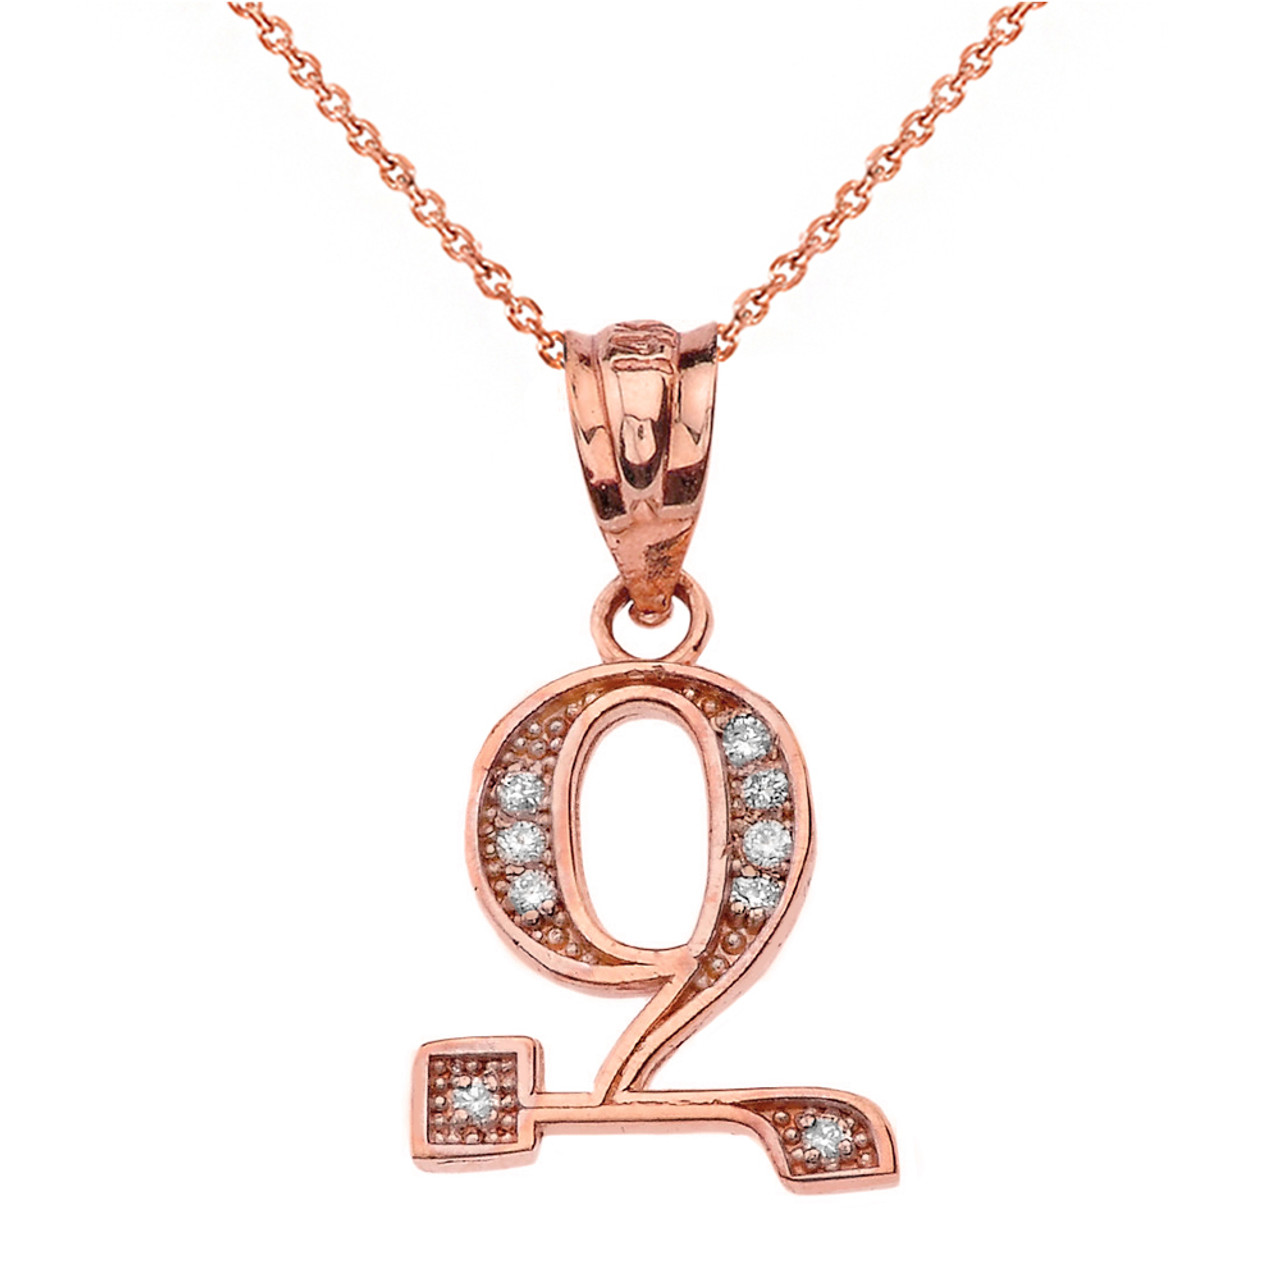 m disc hei g in charm z chain pendants necklaces fit jewelry alphabet letters necklace on pendant a silver ed id tiffany notes constrain fmt wid